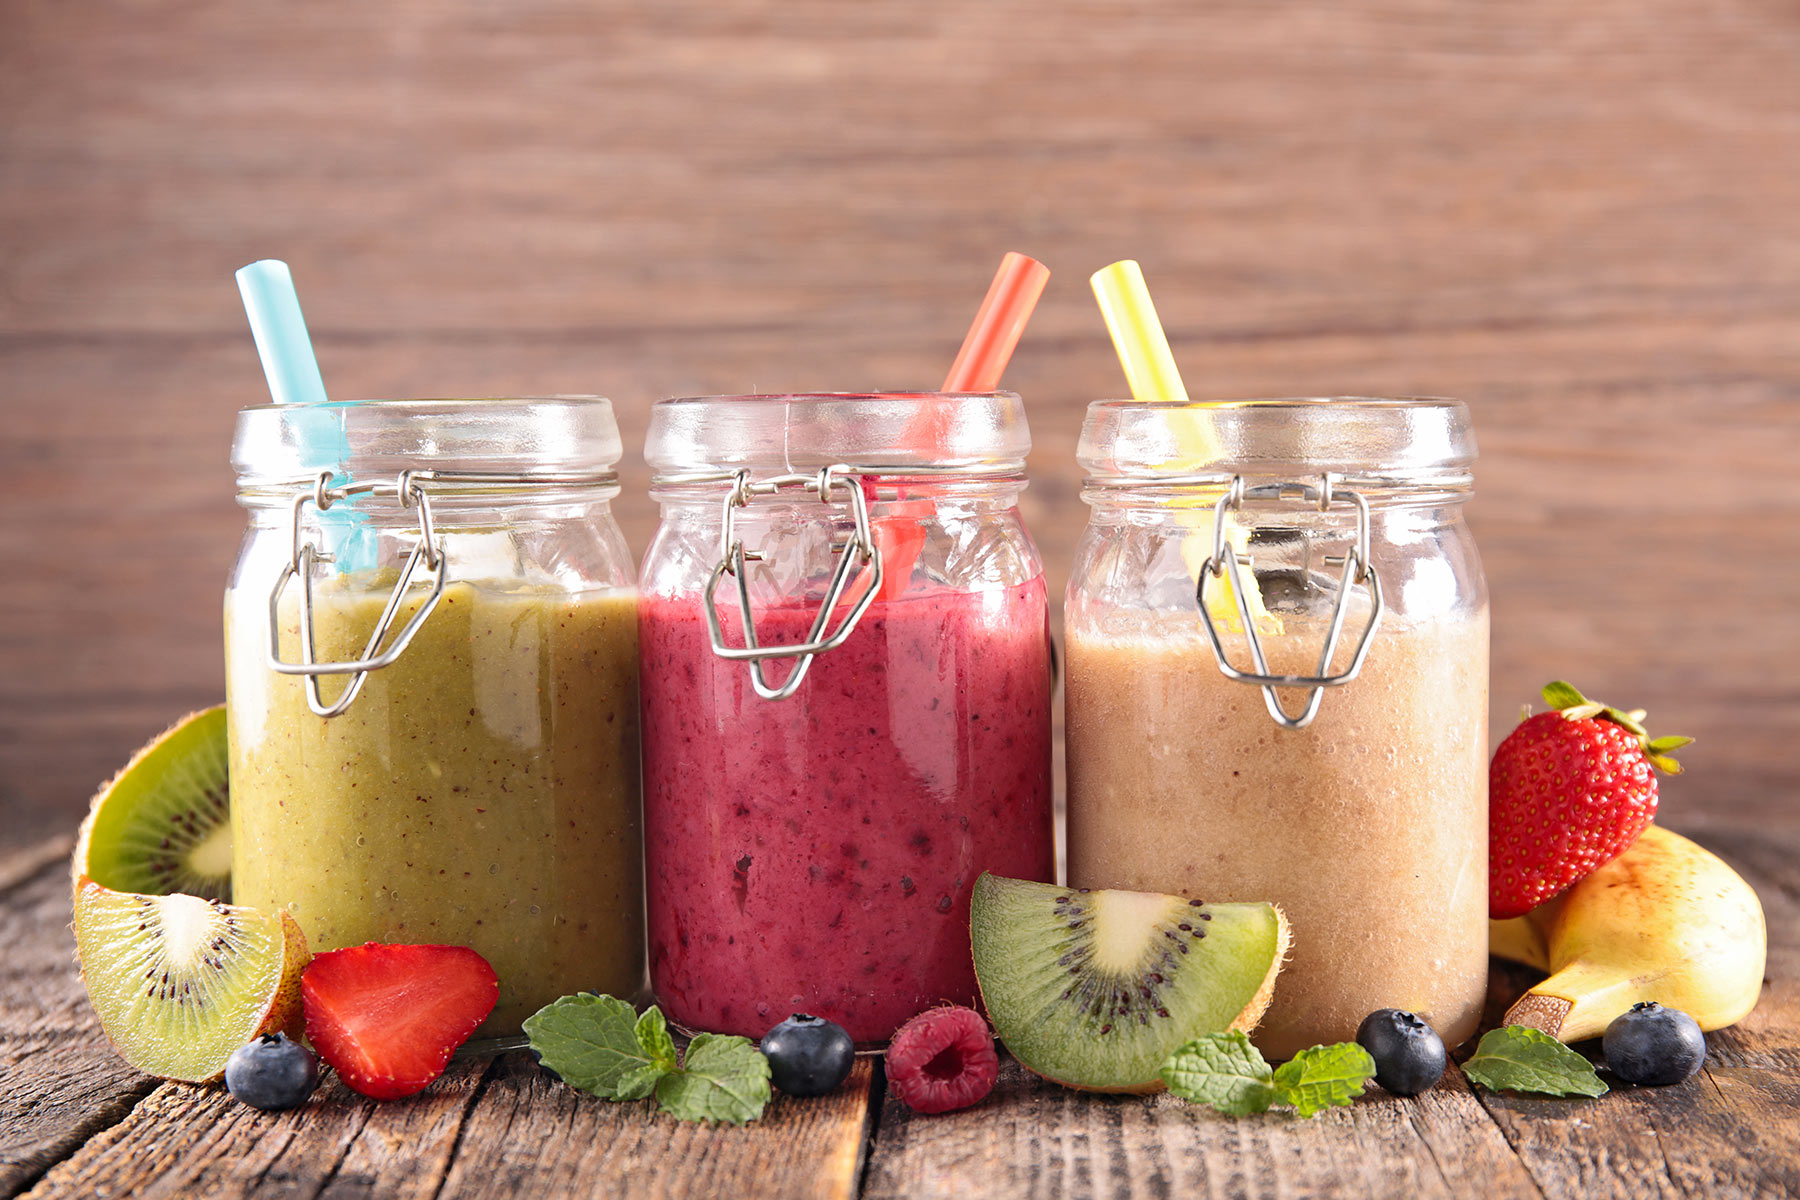 slices of kiwi and strawberry, blueberries and mint, near three jars with snap lids, containing blended drinks in different colors, healthy smoothie recipes, straws and a banana